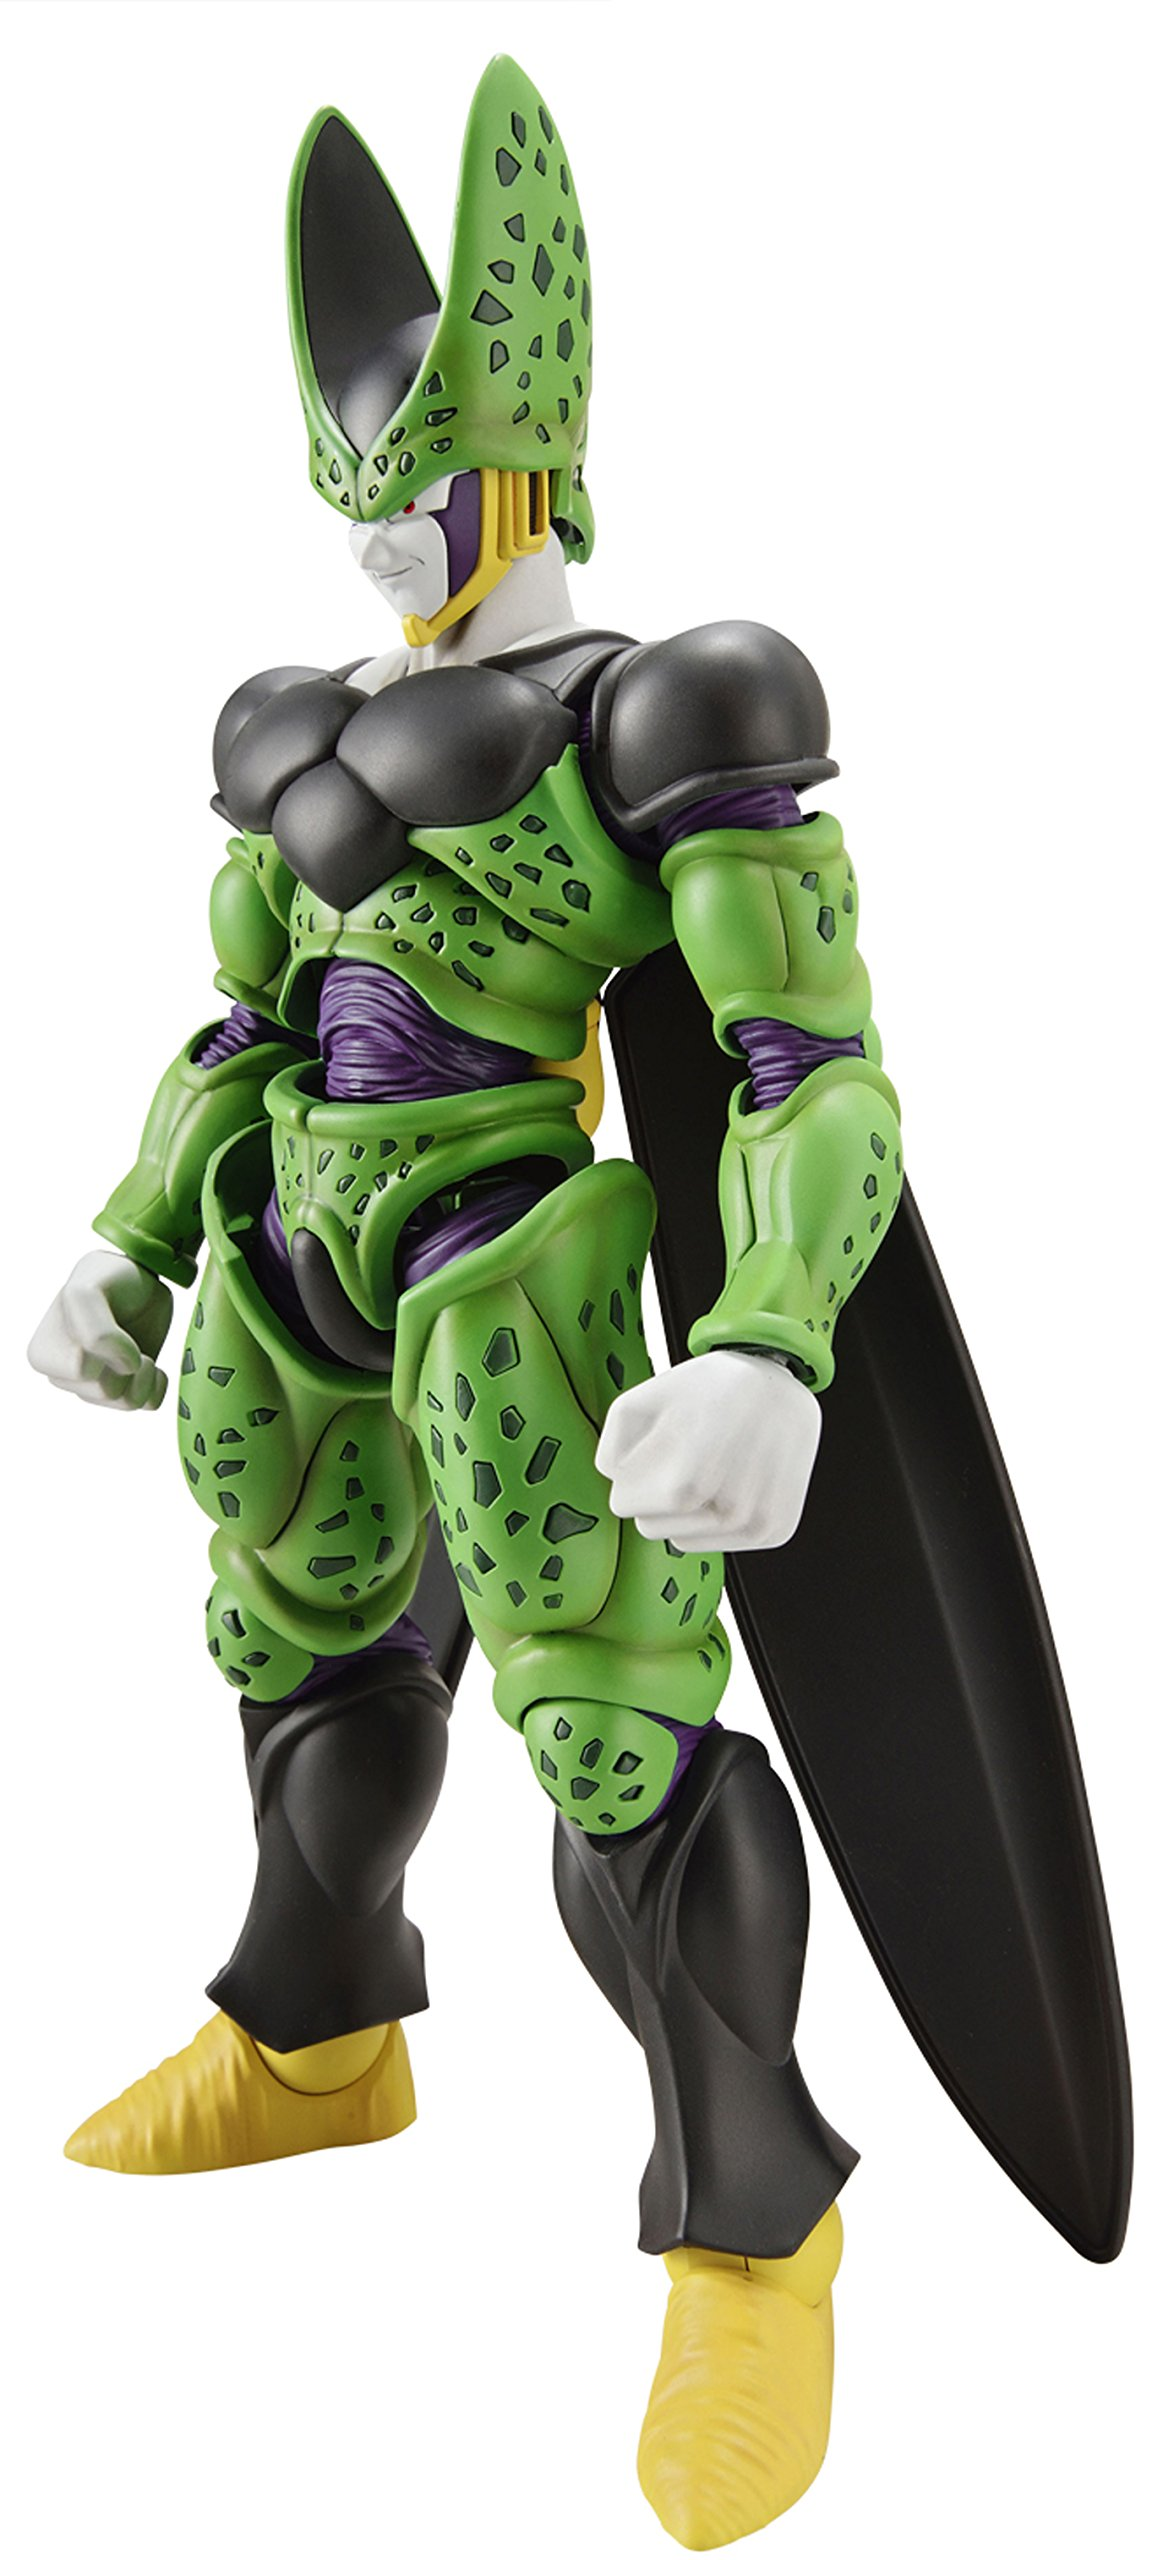 Bandai Hobby Figure-Rise Standard Perfect Cell ''DRAGON Ball Z'' Building Kit